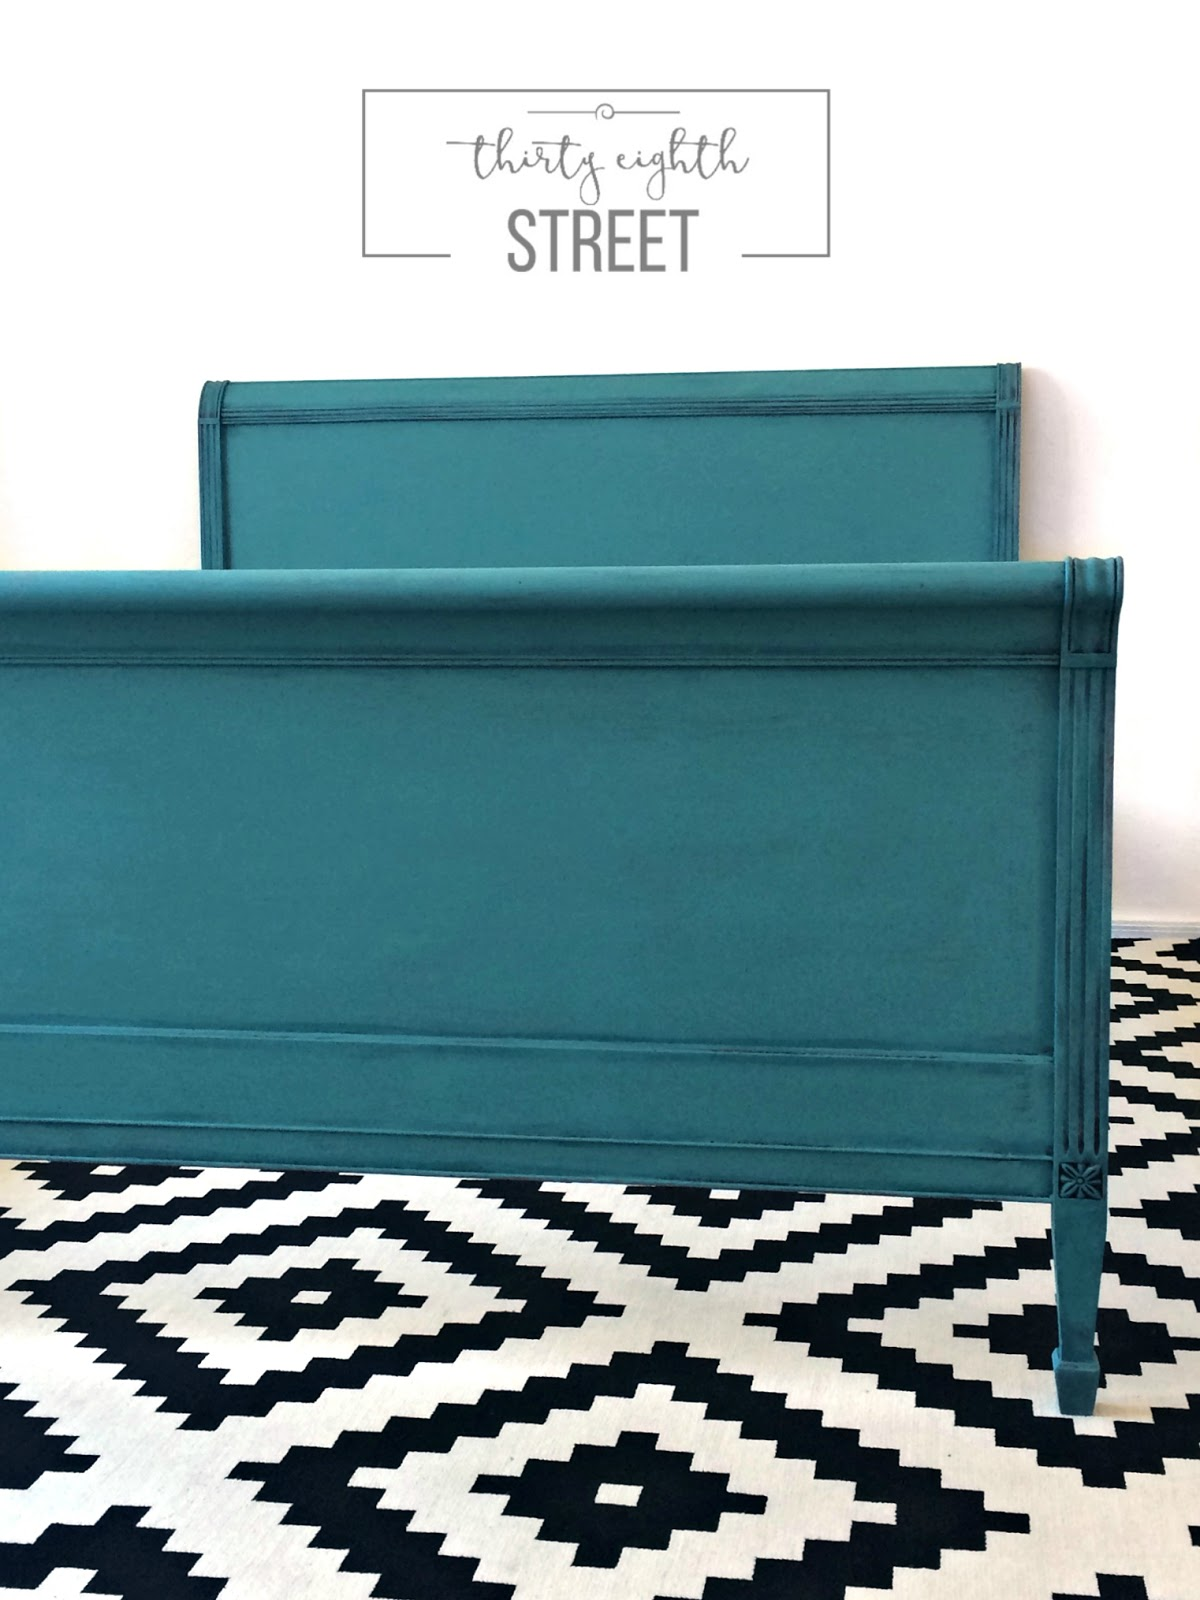 distressed blue furniture. Distressing Old Furniture. Furniture, How To Distress Turquoise Bed, Update Furniture Distressed Blue